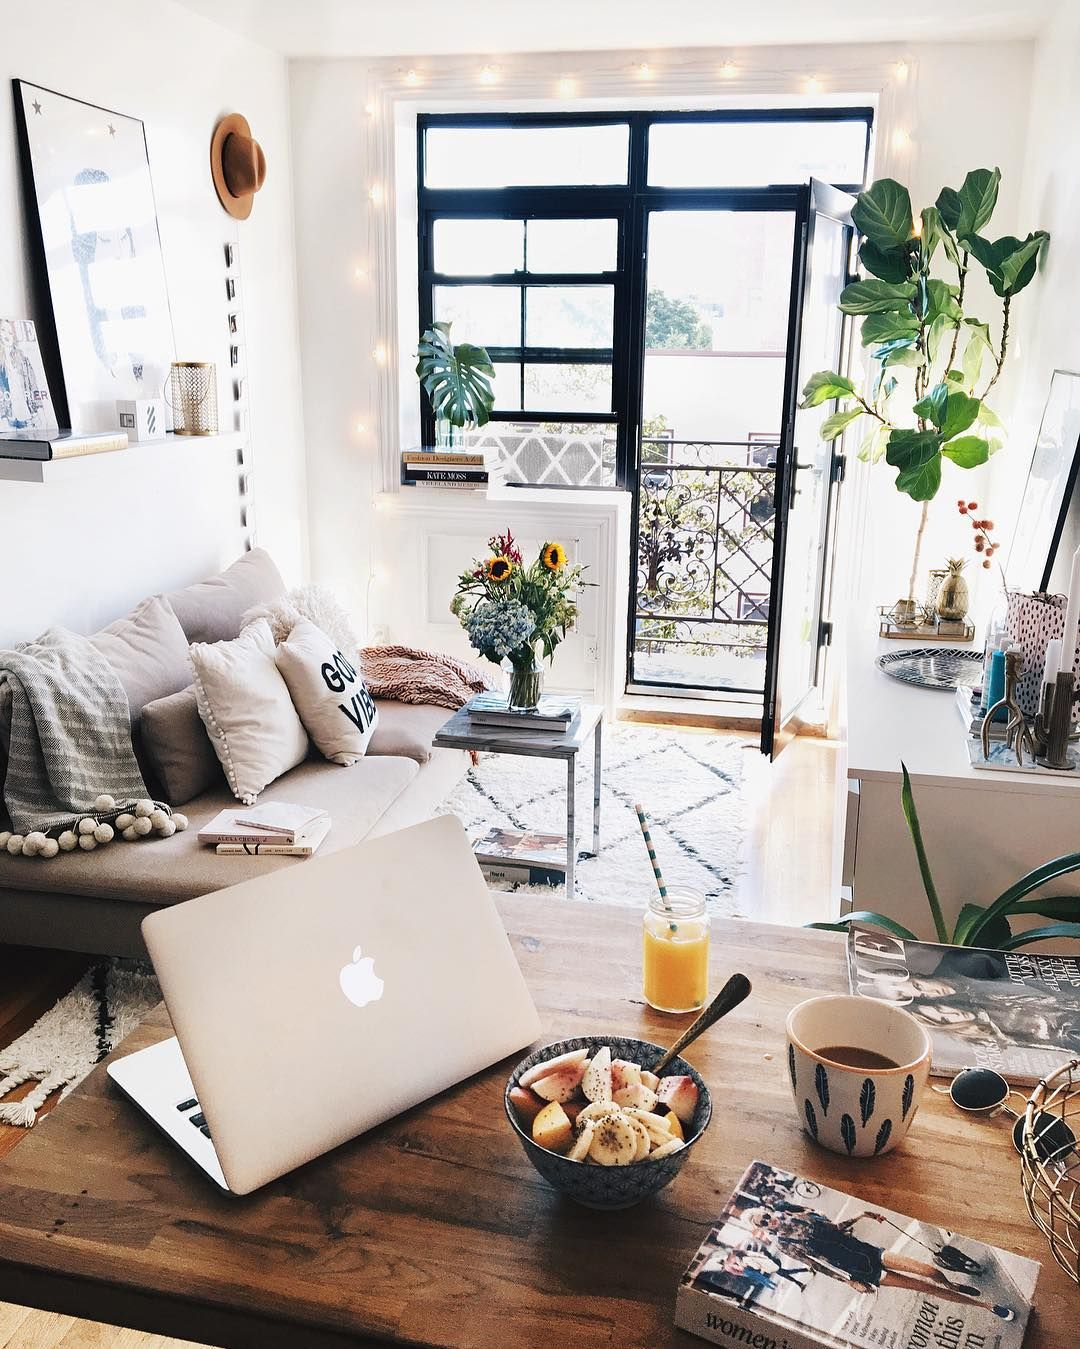 5 Dreamy Feng Shui Tricks For A Small Apartment Add Plants They Bring Calm Vibe And Bit Of Fresh Air Into Your Home